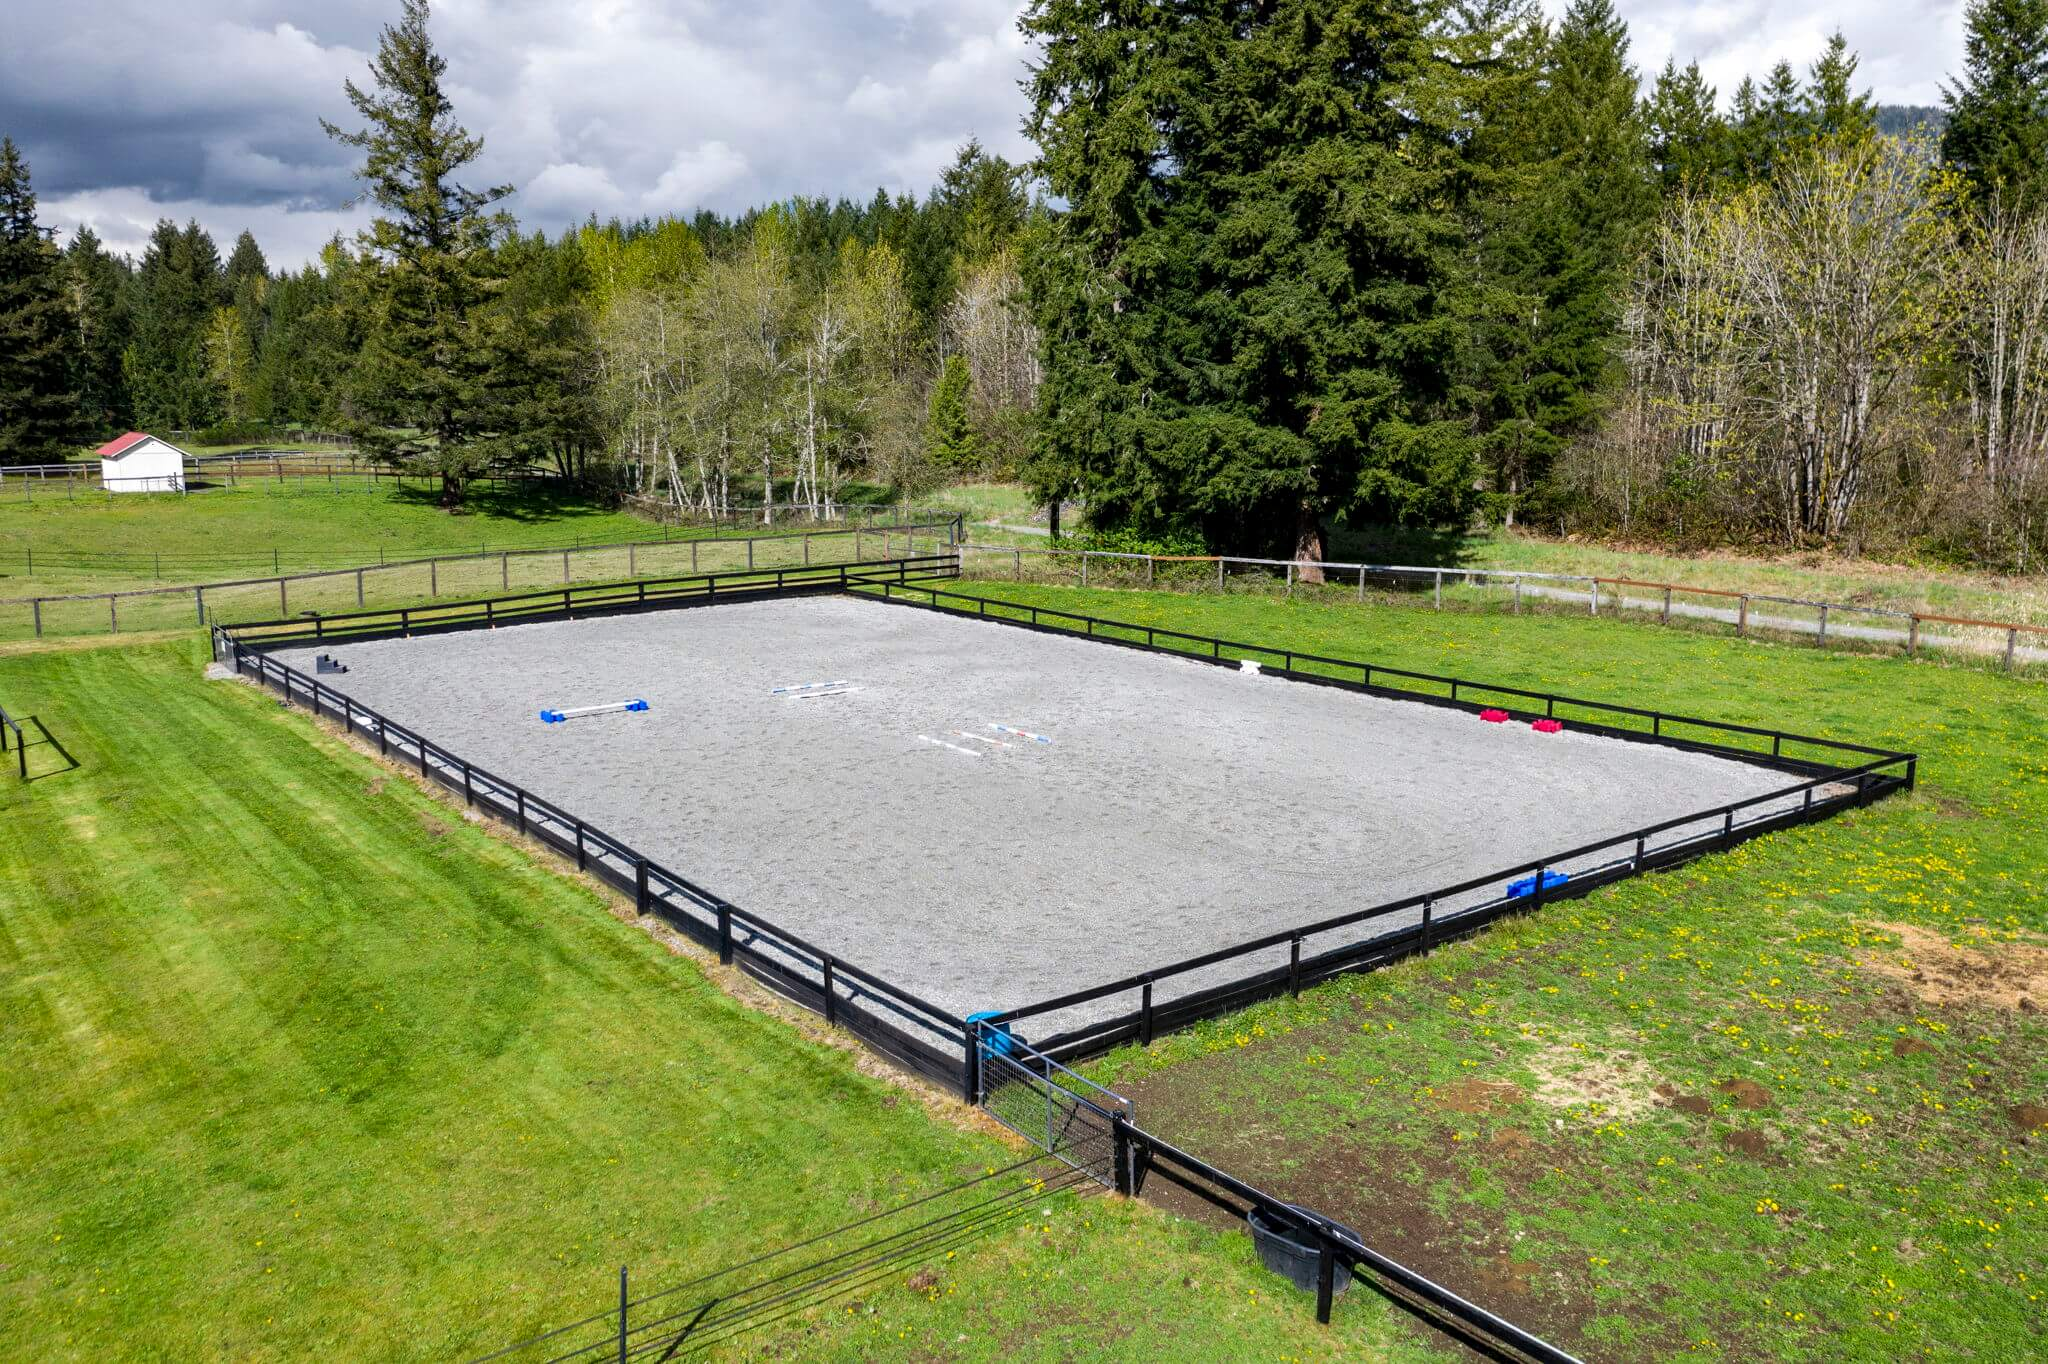 80' x 160' professionally leveled arena with all-weather custom blend footing of GGT felt, silicone and sand